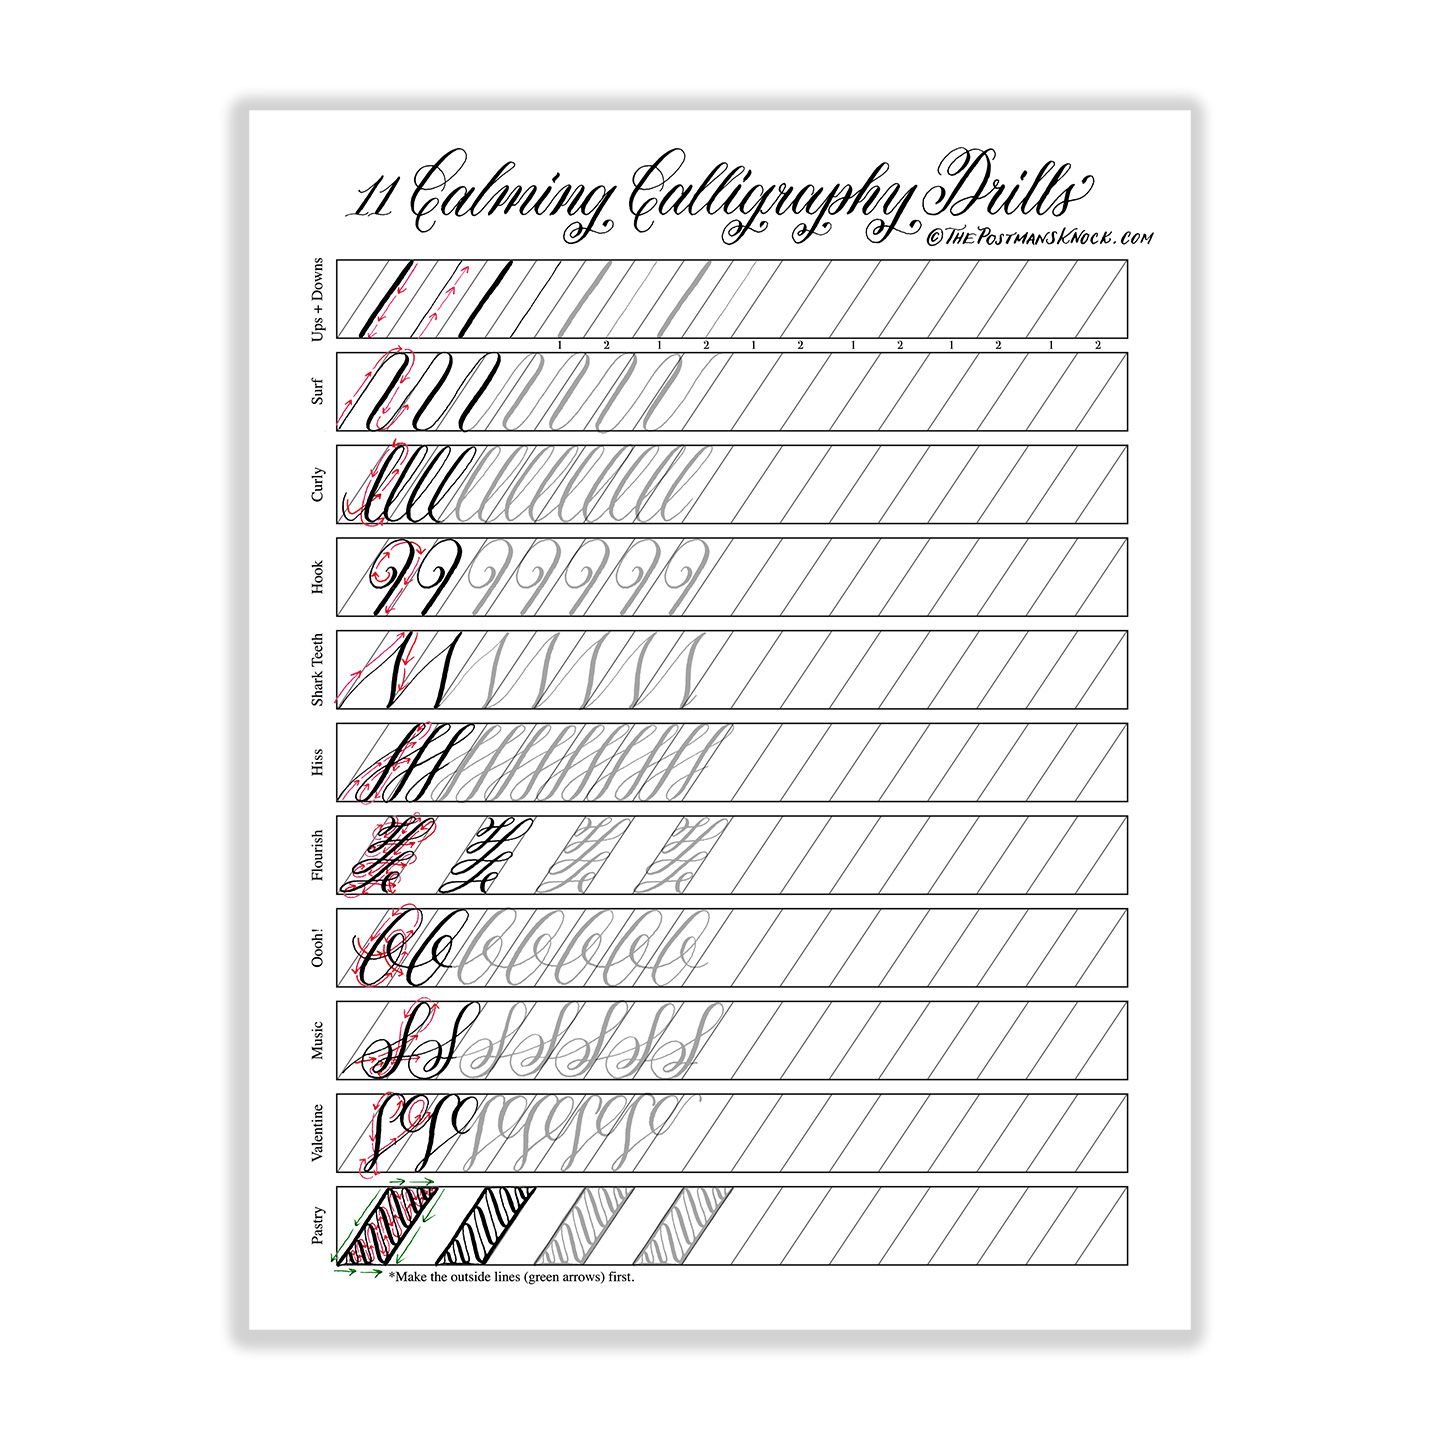 This Sheet Provides You With Eleven Unique Calligraphy Drills To Help Practice Using Your Dip